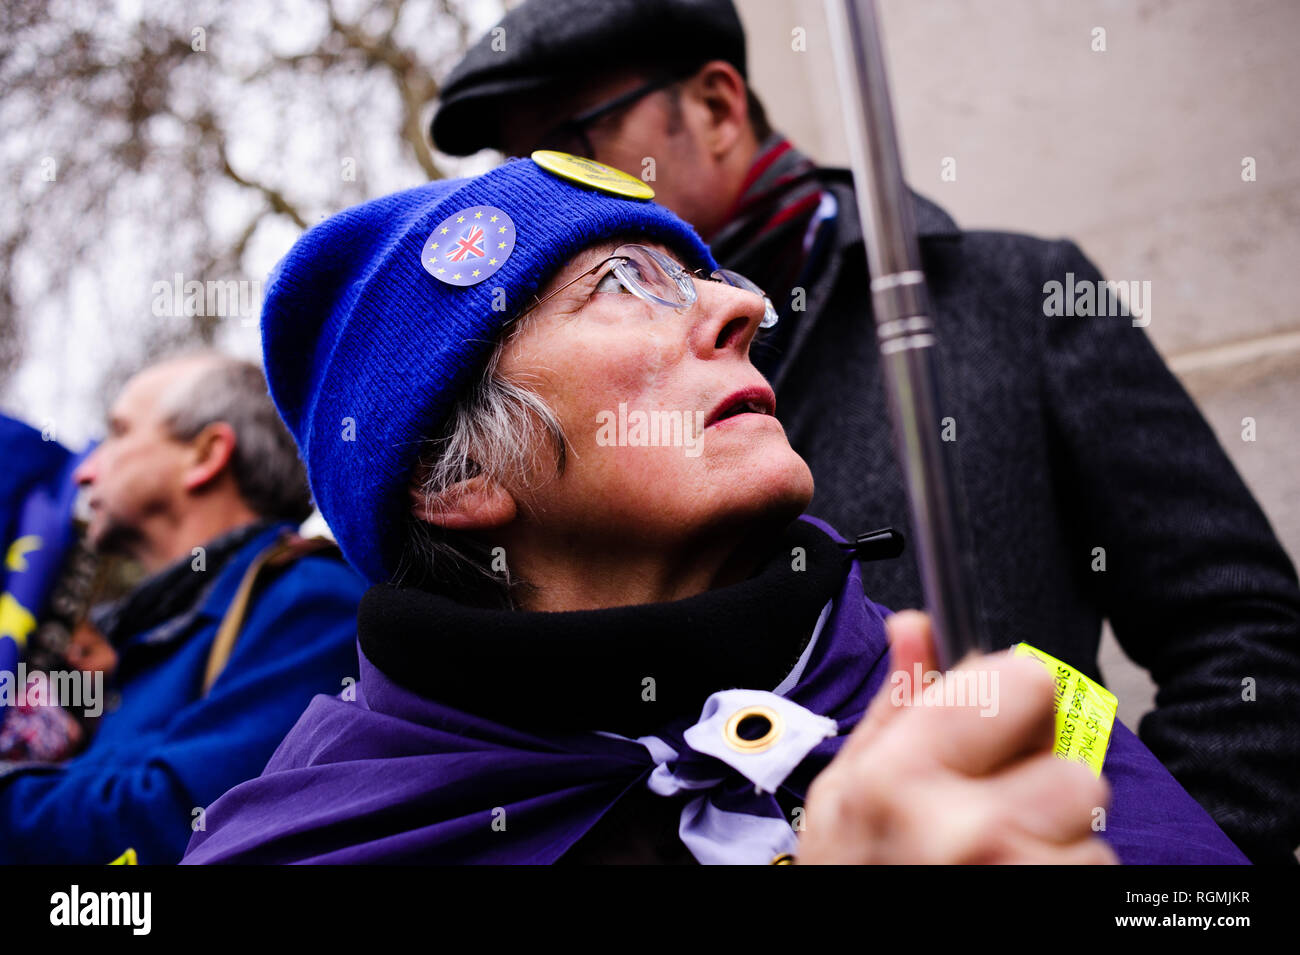 London, UK. 29th Jan, 2019. Anti-Brexit activists demonstrate outside the Houses of Parliament in central London. In the Commons, on a day of significant parliamentary activity over Brexit, MPs voted down a cross-party amendment tabled by Labour Party MP Yvette Cooper and Conservative Party MP Nick Boles designed to substantially reduce the risk of a much-feared ''no-deal'' exit from the EU. An amendment rejecting the principle of a no-deal exit was meanwhile approved, as was a government-backed amendment championed by Conservative Party MP Graham Brady calling for ''alternativ Stock Photo